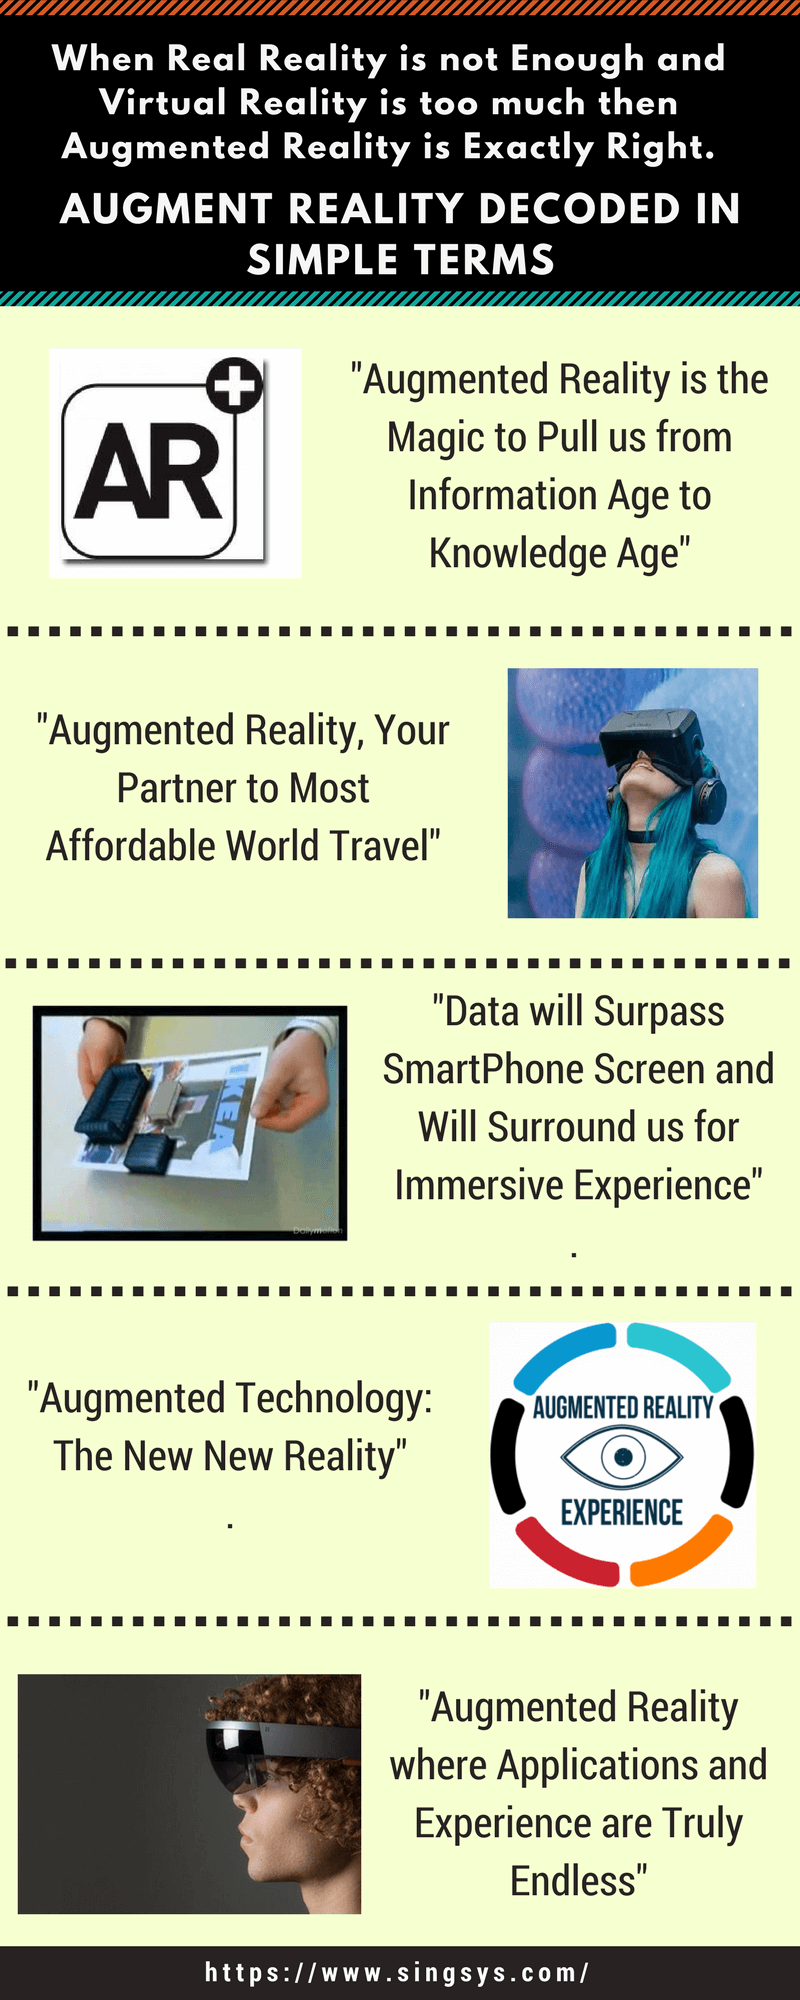 Augmented Reality and its Impact